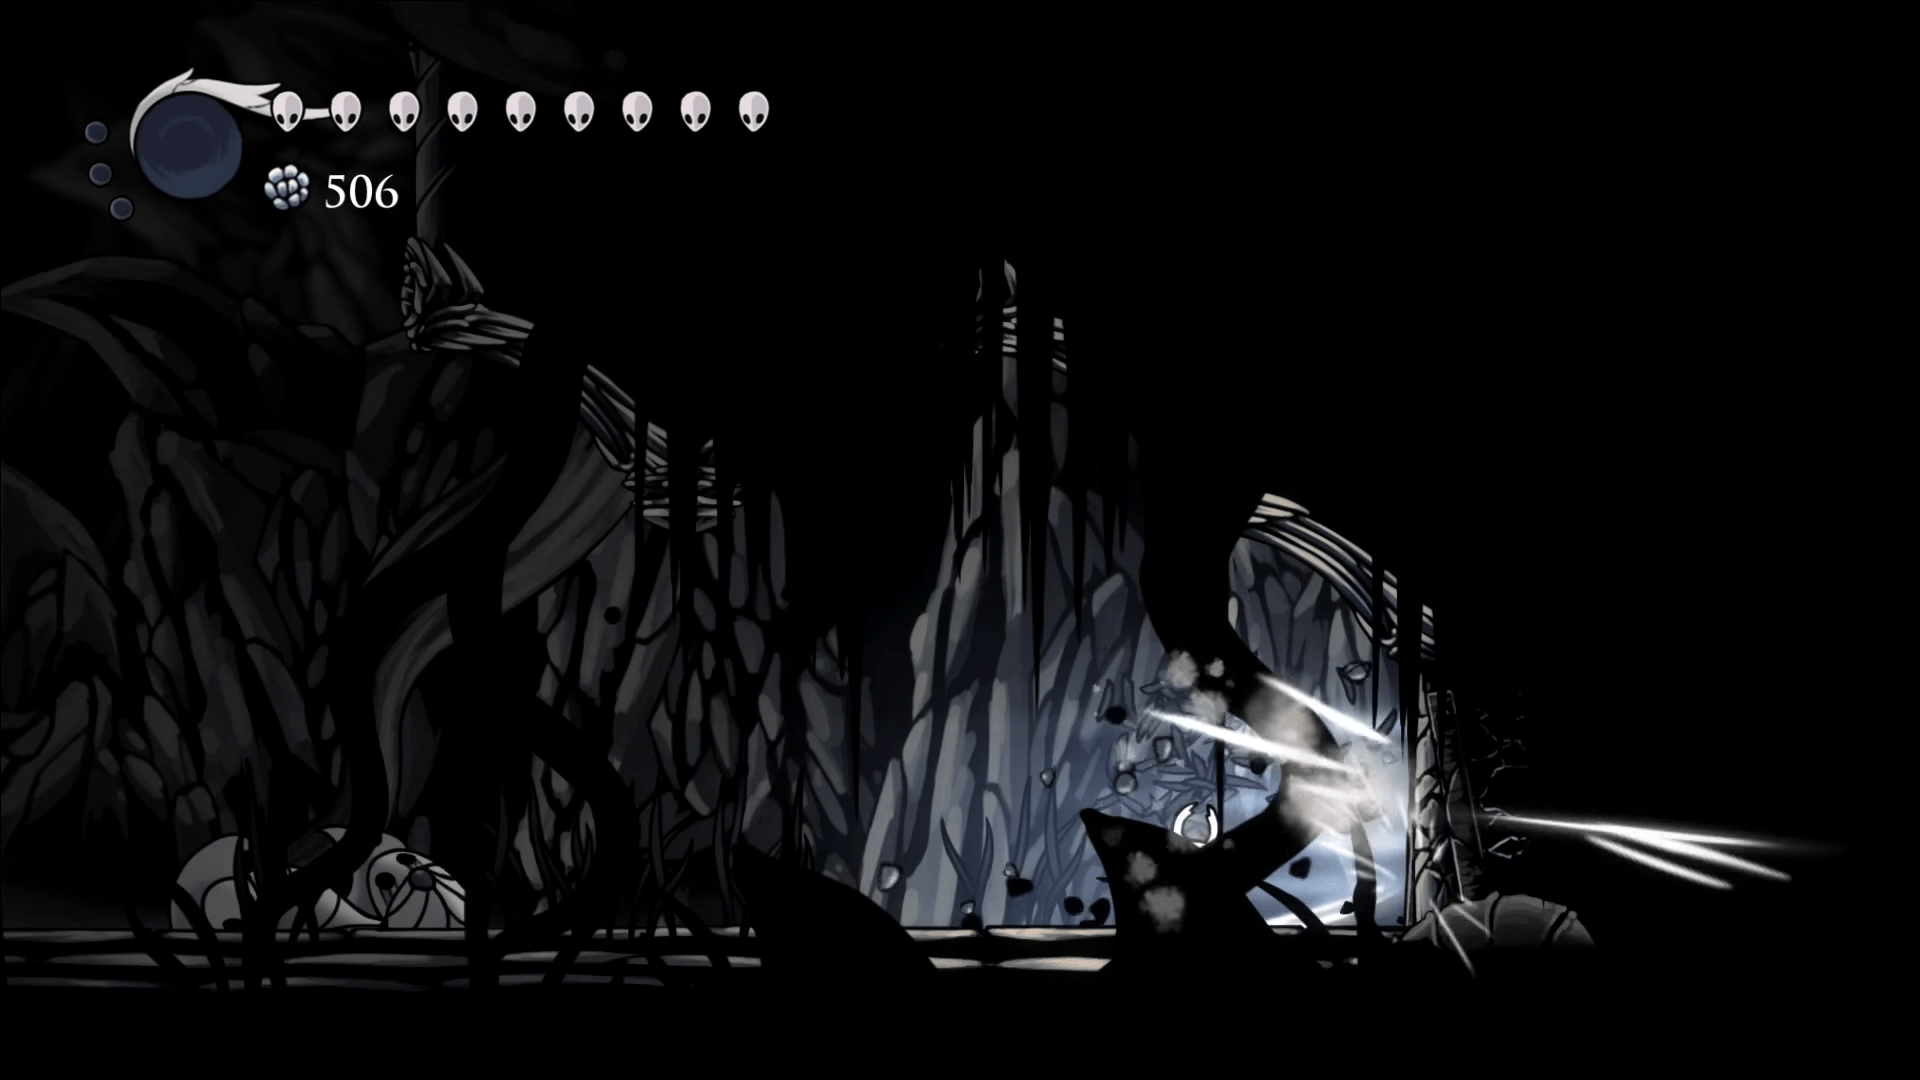 how to play the dlc in hollow knight in switch?